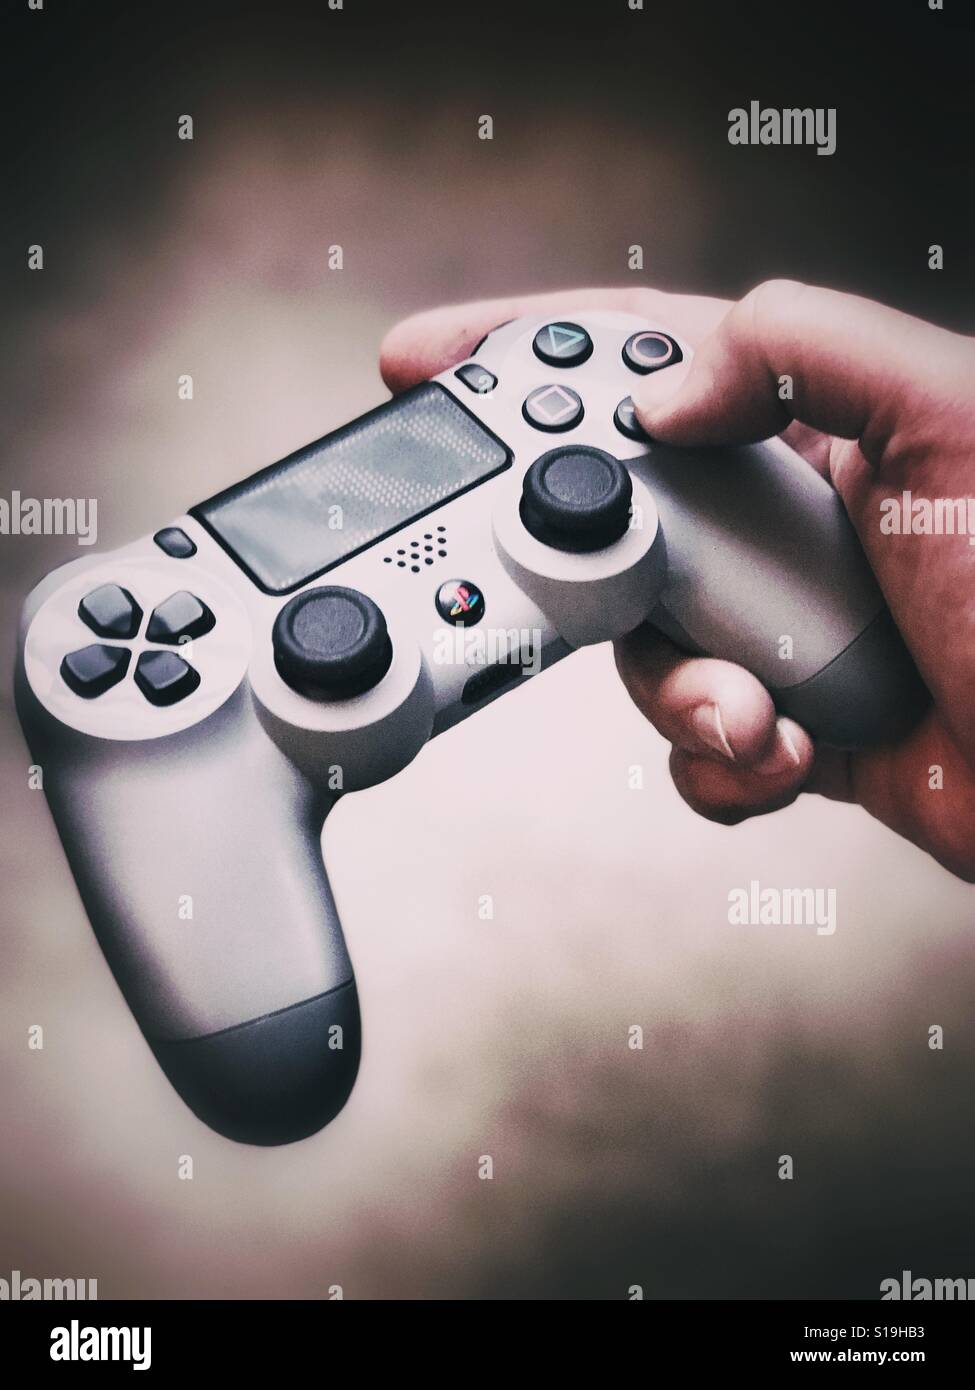 Holding A PlayStation Controller